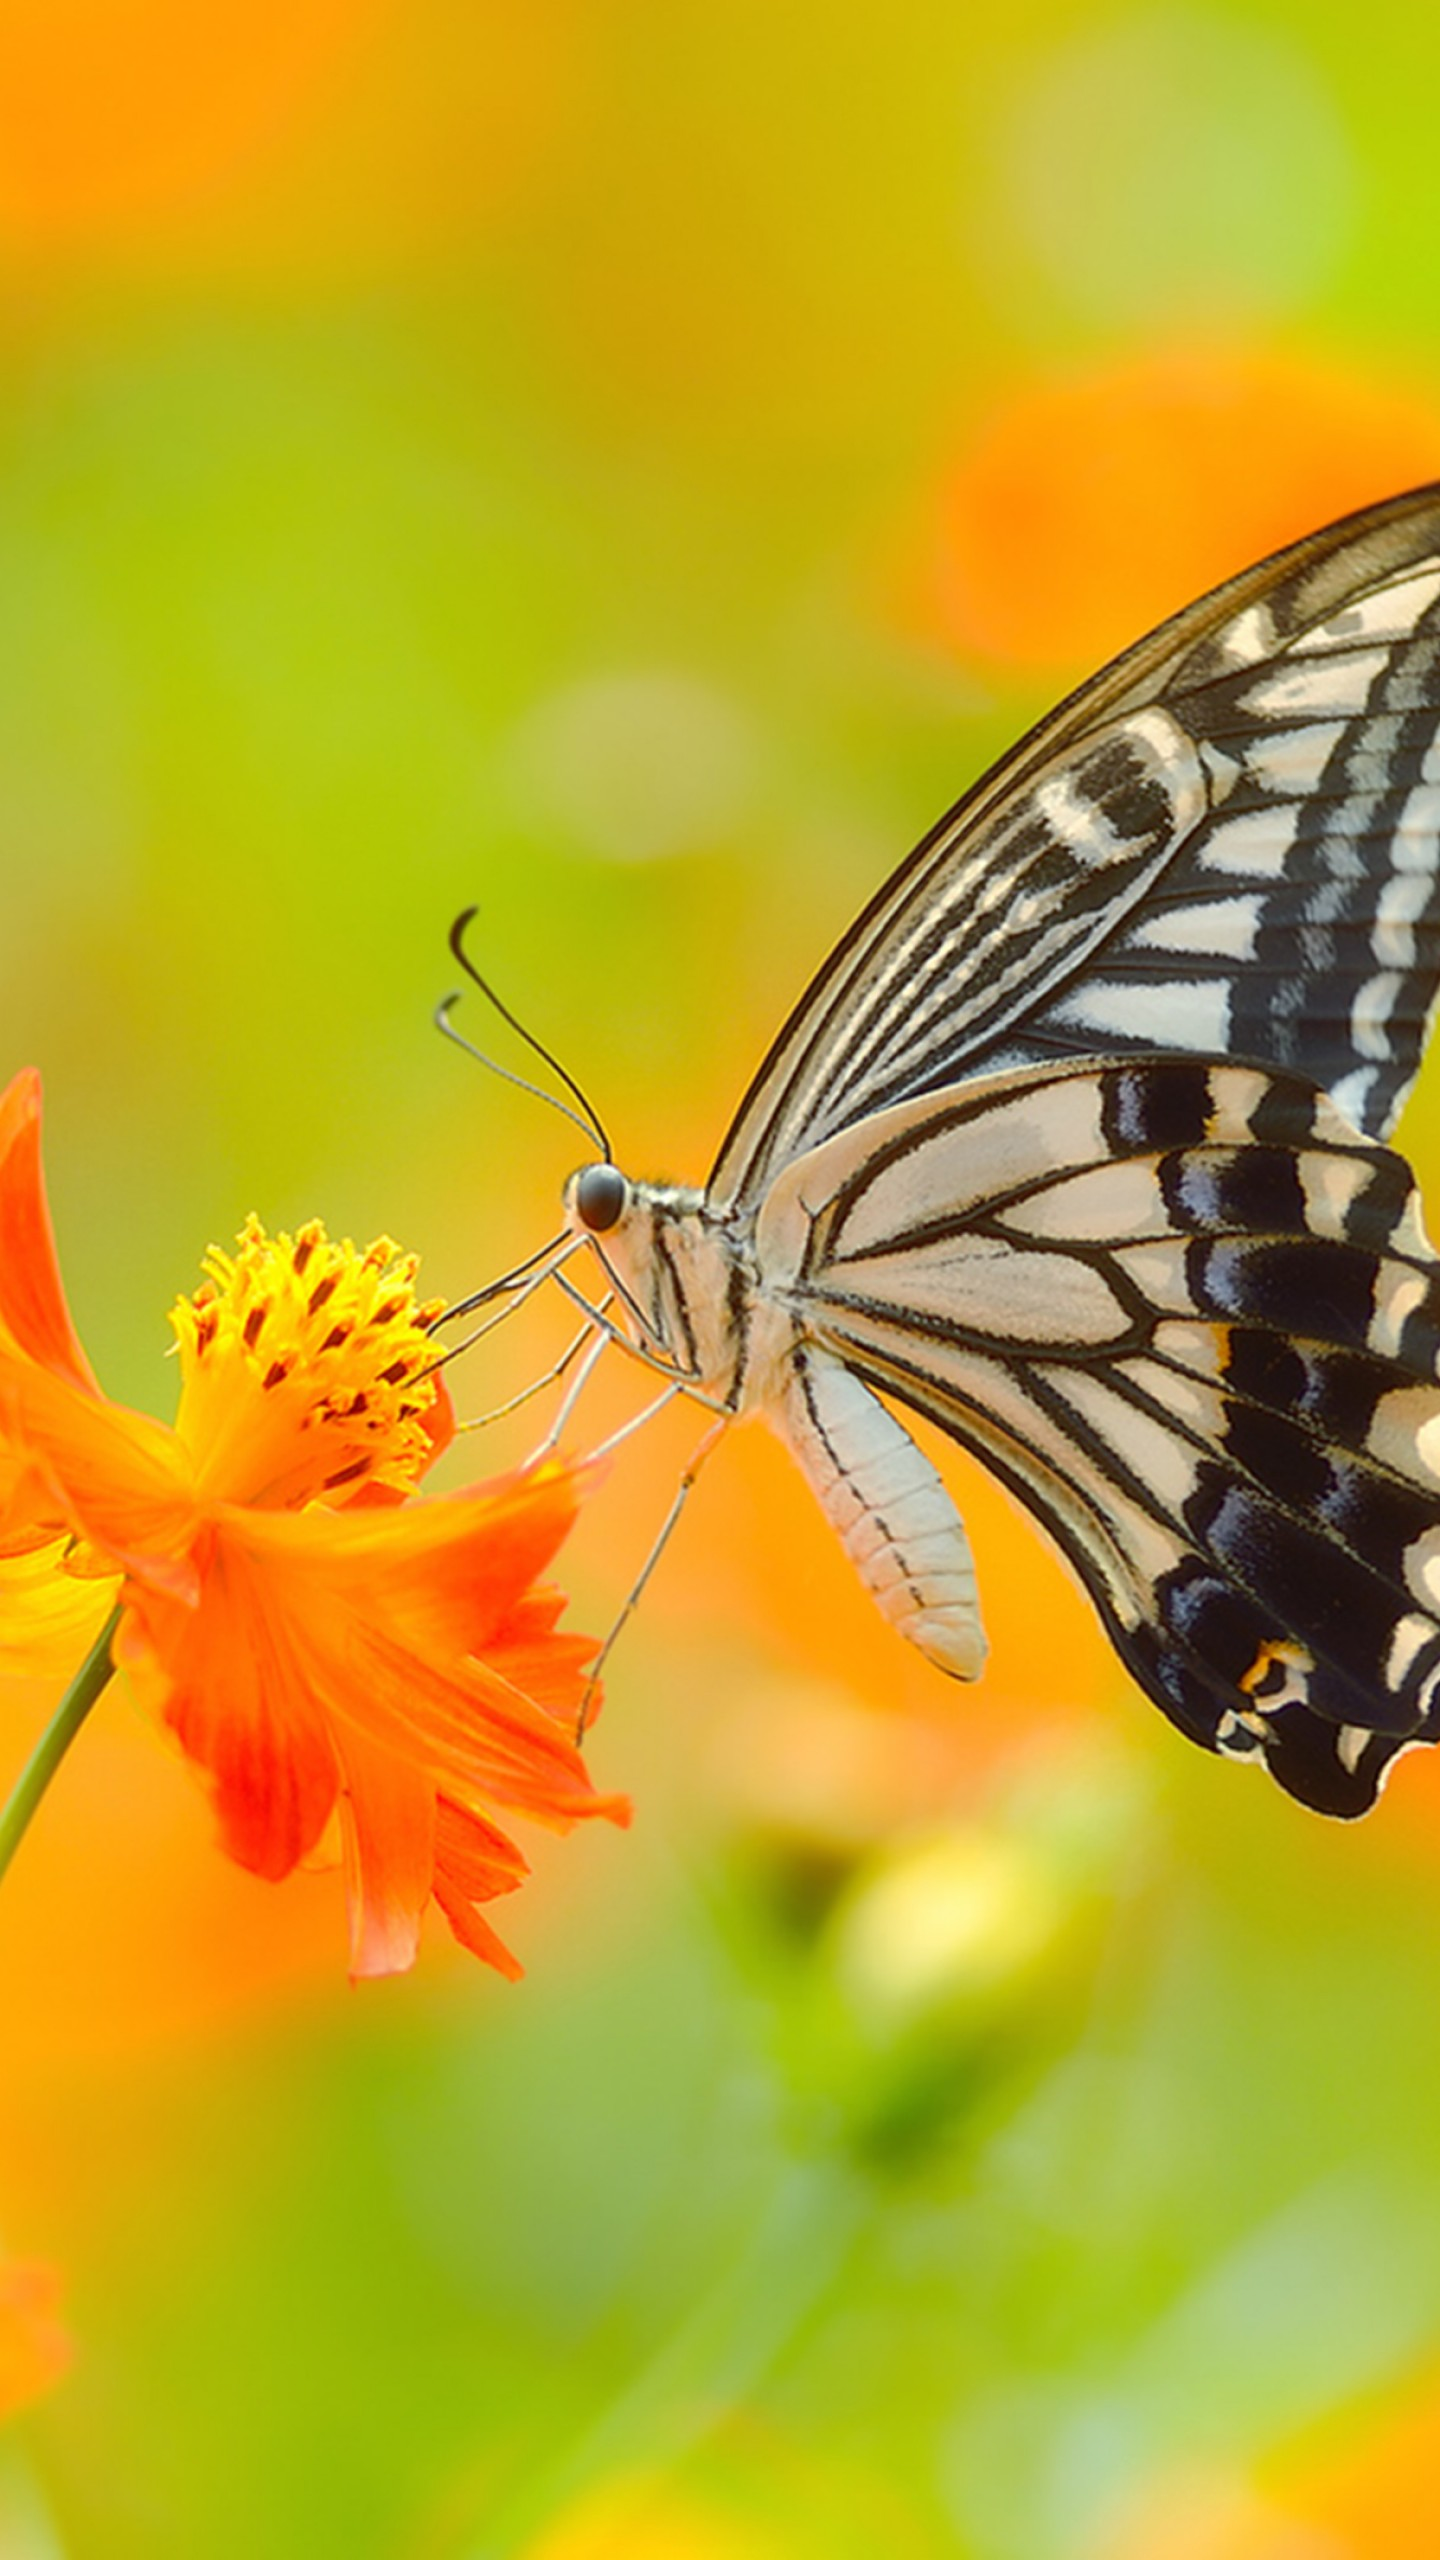 Yellow Wallpapers With Quotes Wallpaper Butterfly 5k 4k Wallpaper Colorful Flowers